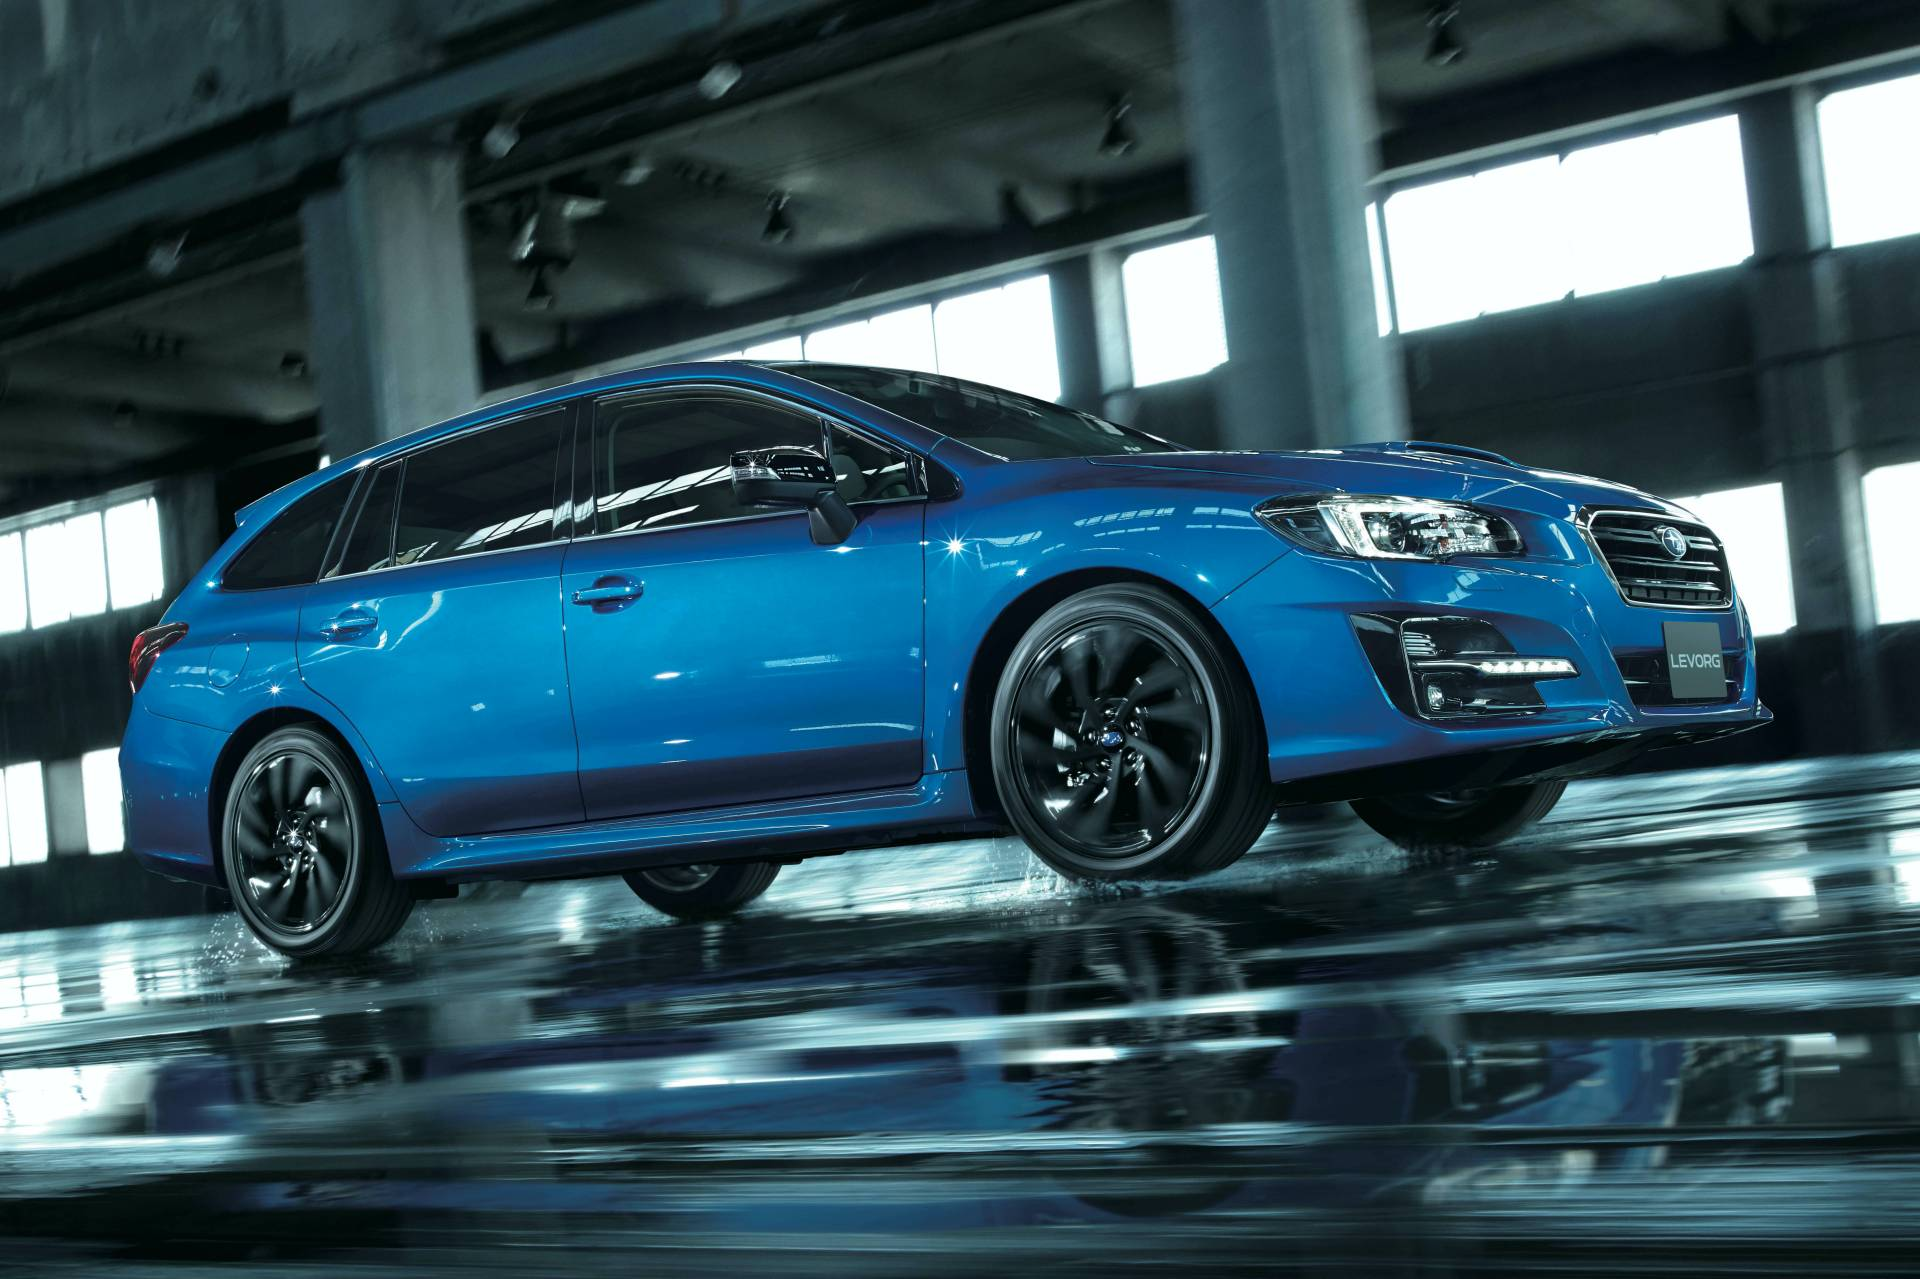 Subaru-Levorg-2.0GT-EyeSight-V-Sport-3